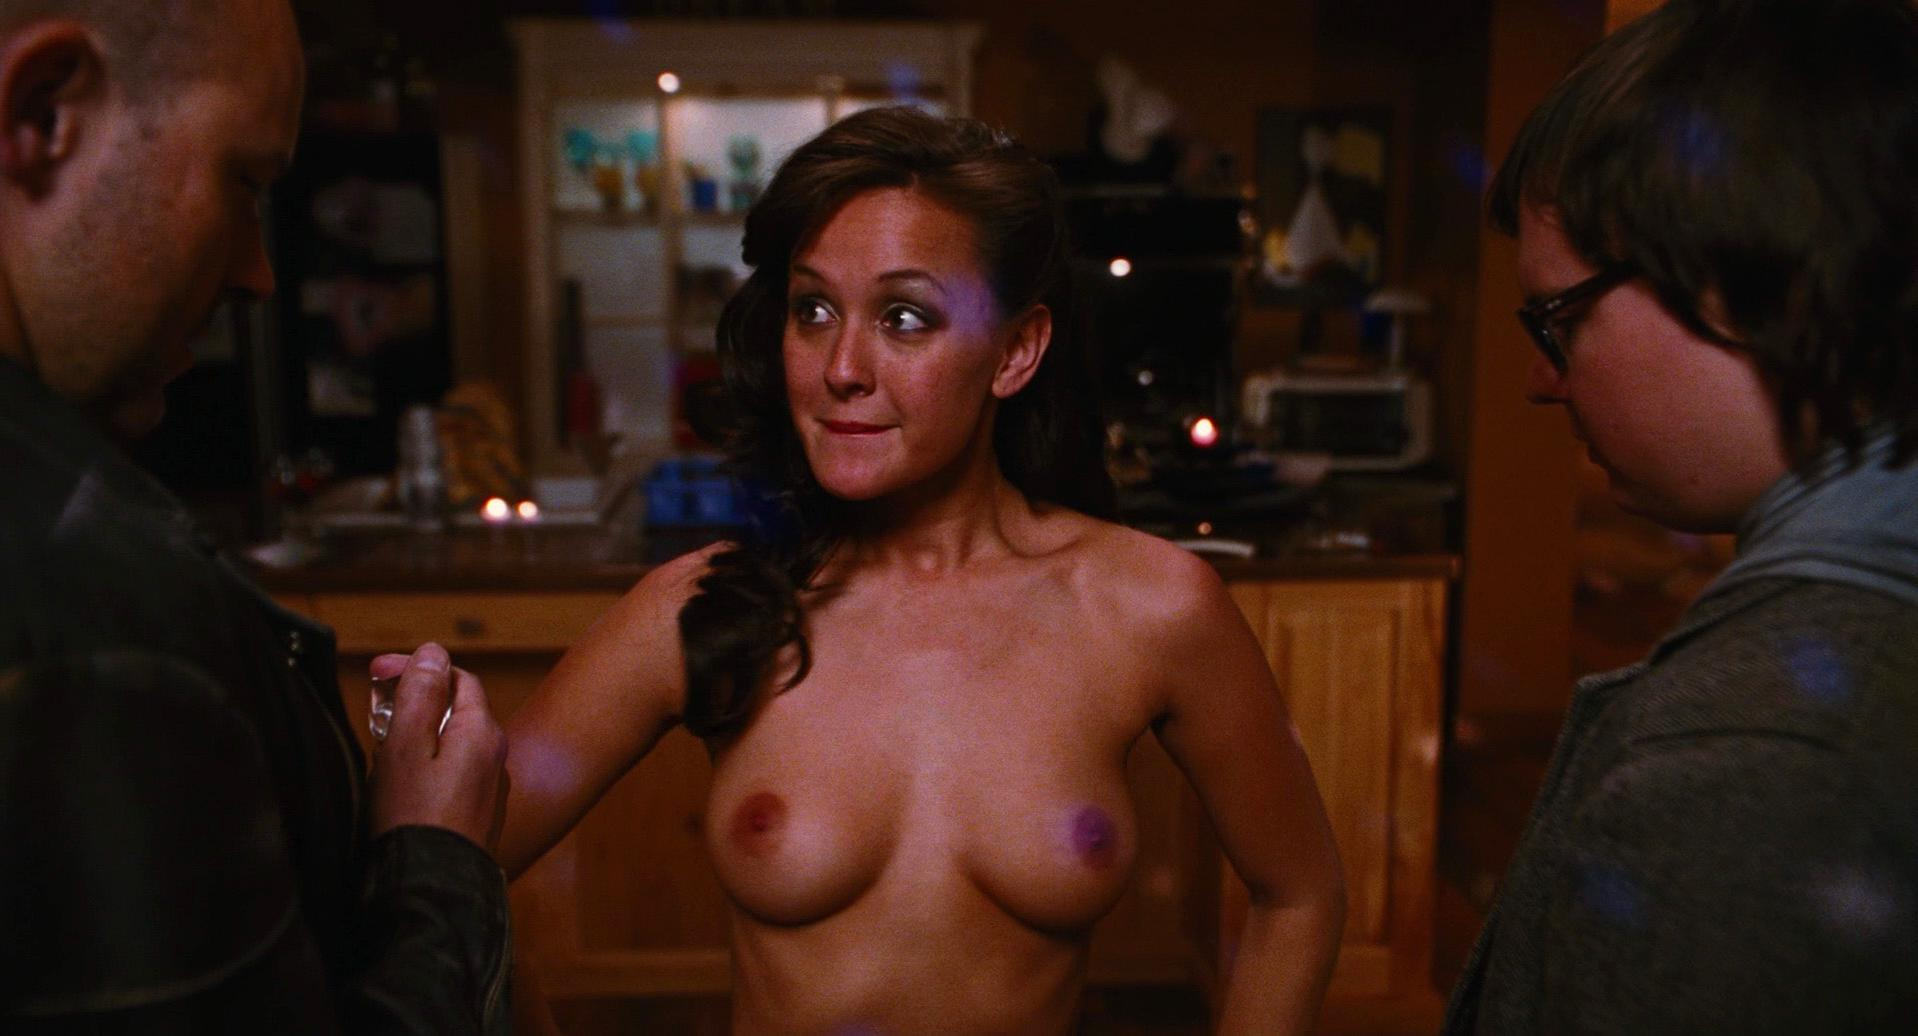 Can crystal lowe hot tub time machine scene reply